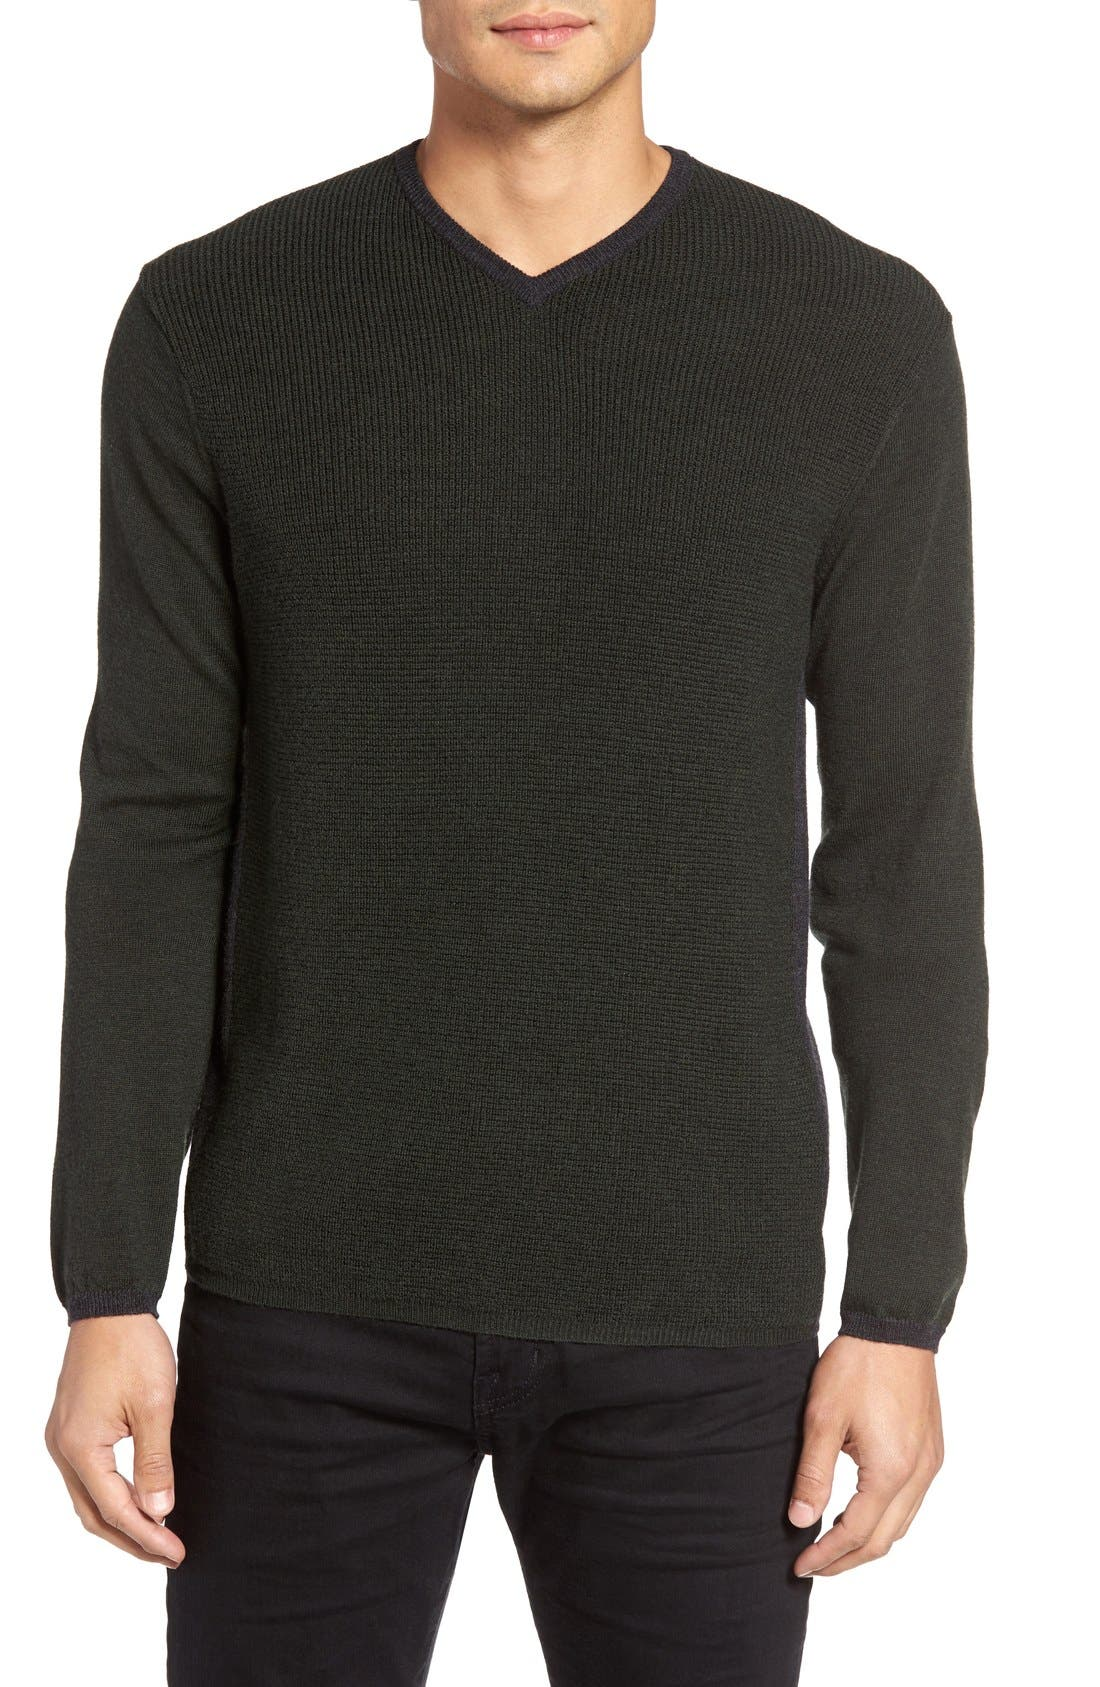 Alternate Image 1 Selected - Zachary Prell V-Neck Colorblock Merino Wool Pullover